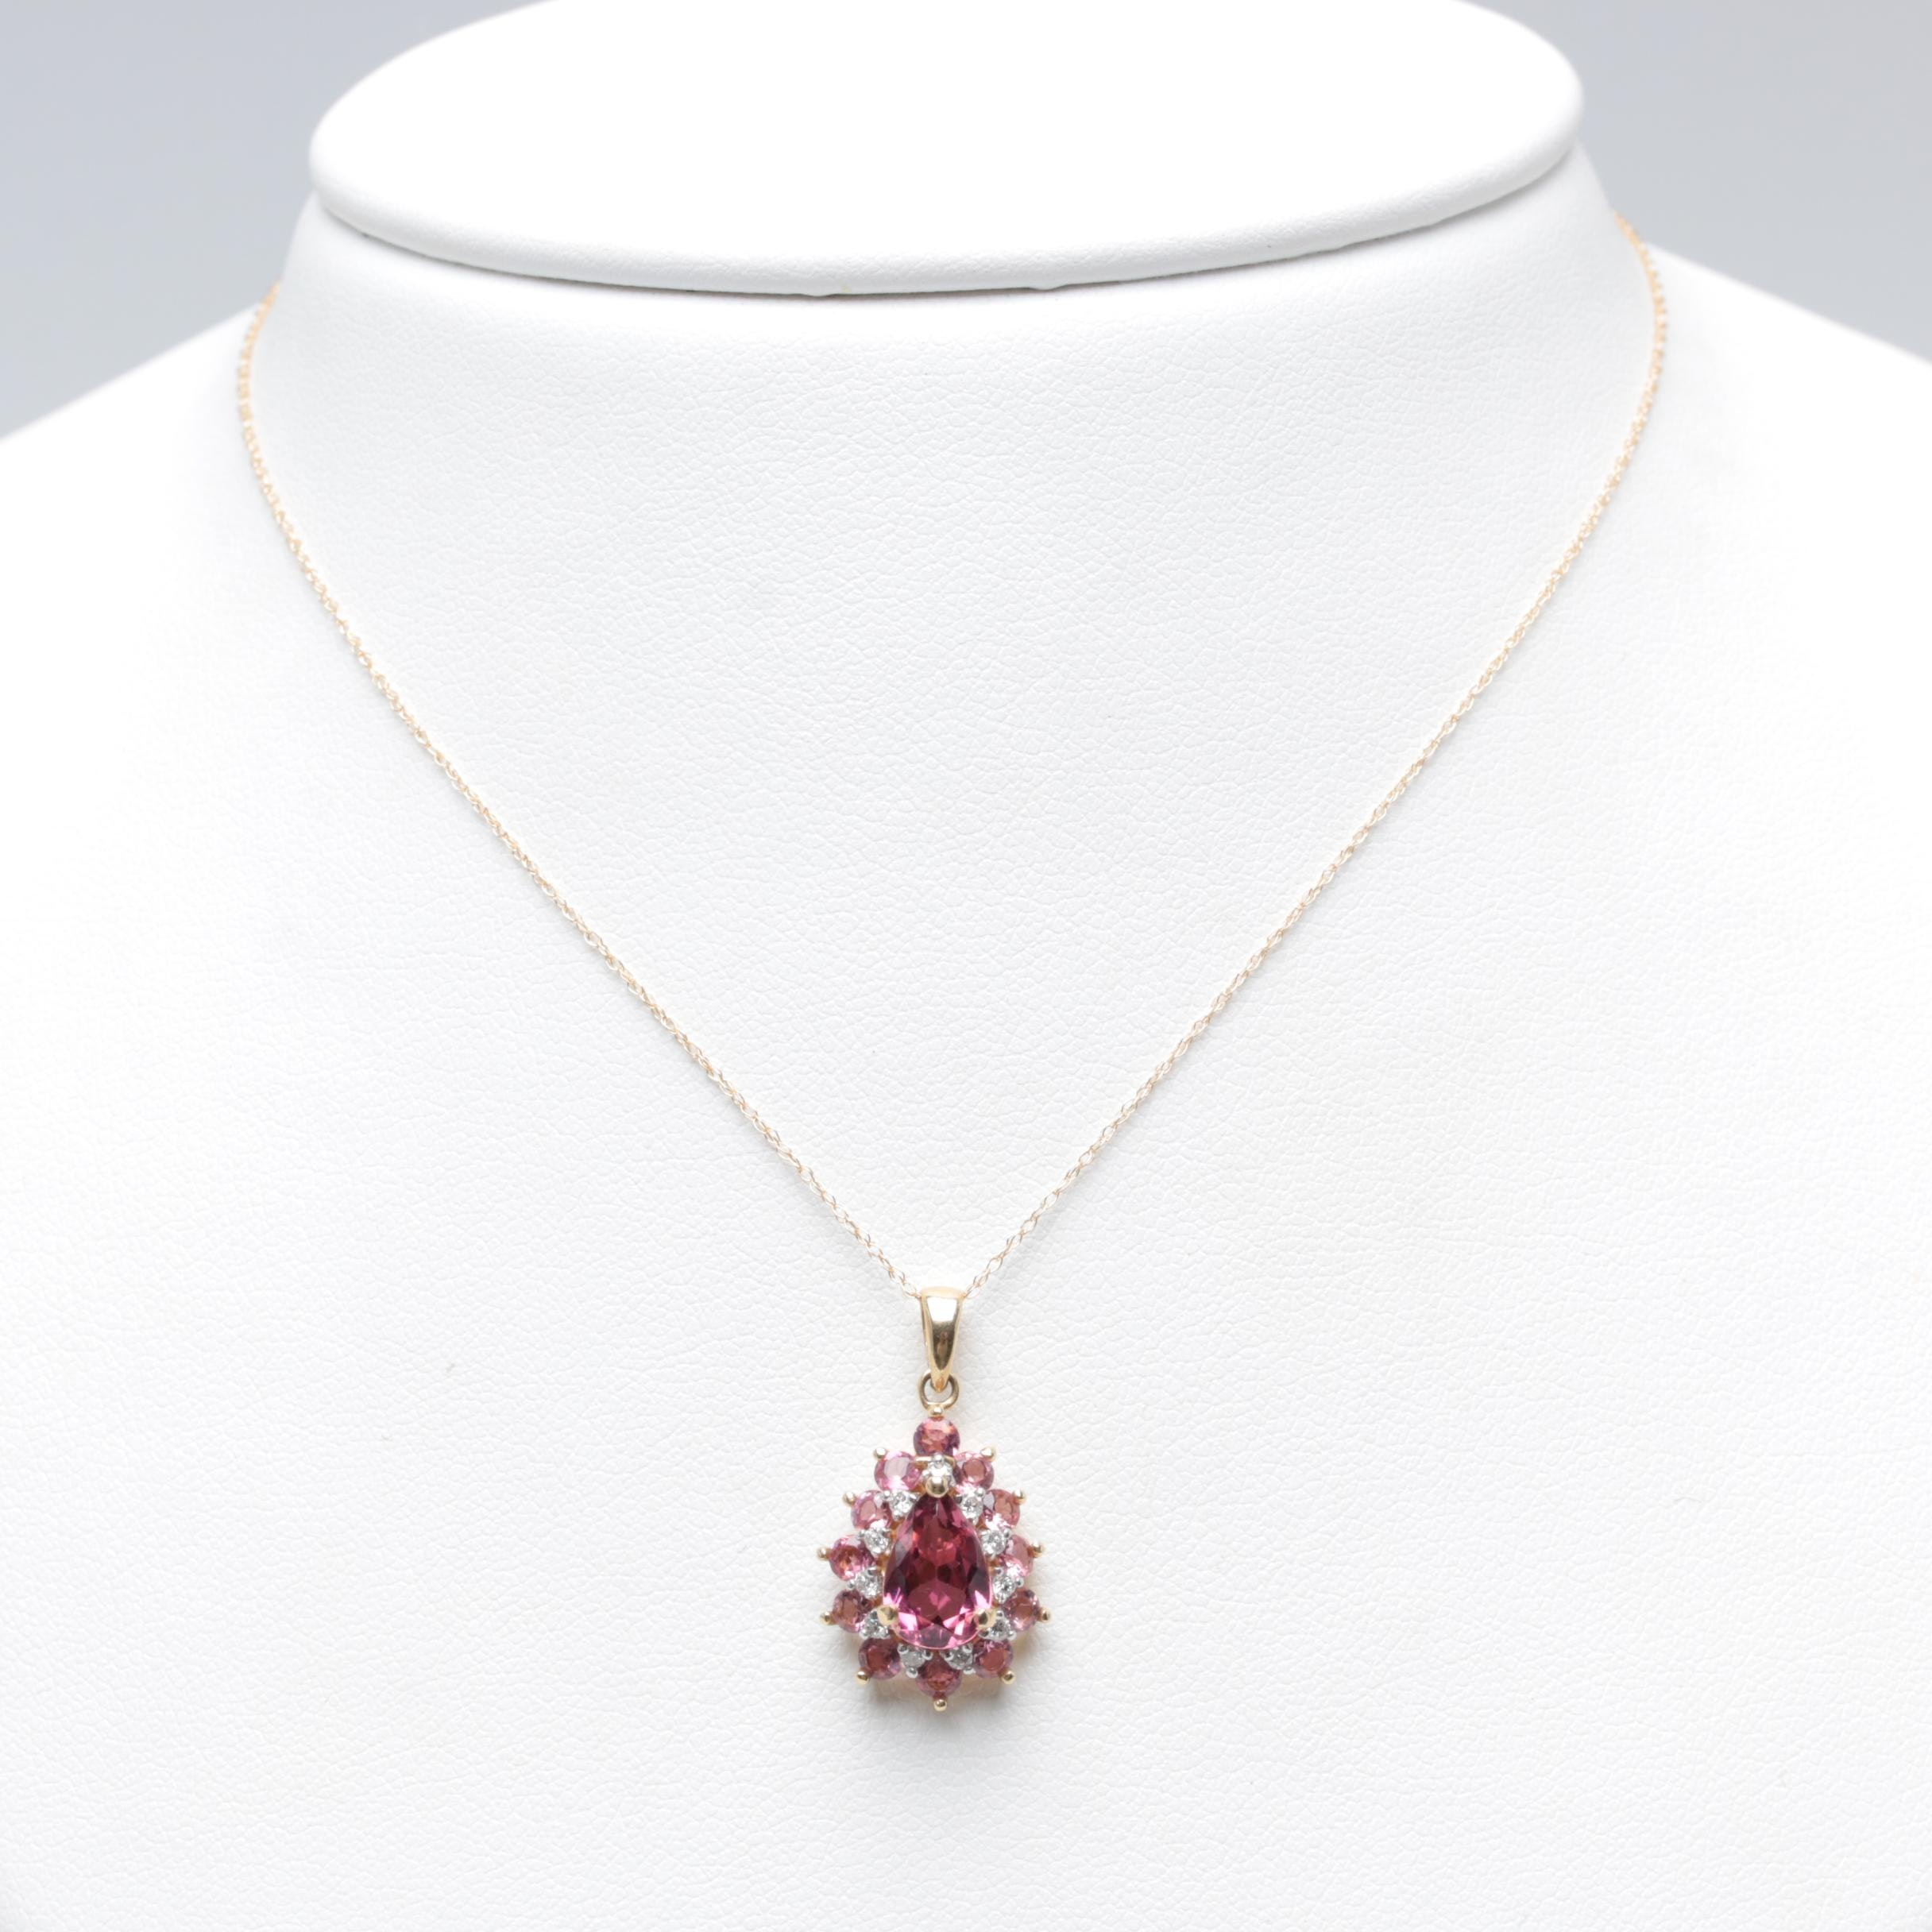 14K Yellow Gold Pink Tourmaline and Diamond Pendant Chain Necklace